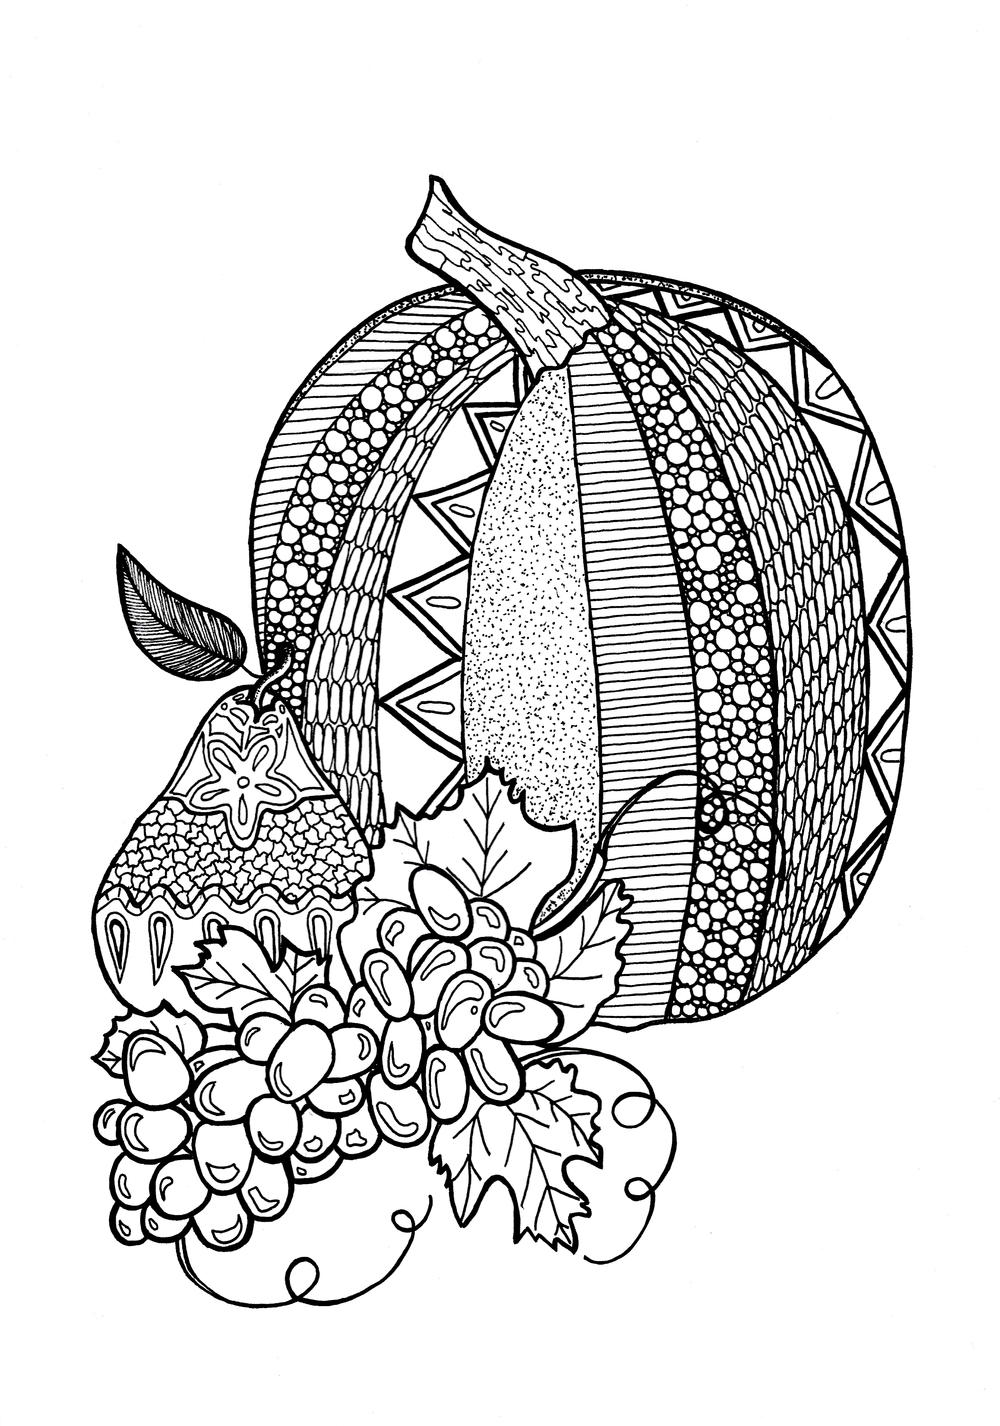 Textured pumpkin adult coloring page for Pumpkin coloring pages for adults